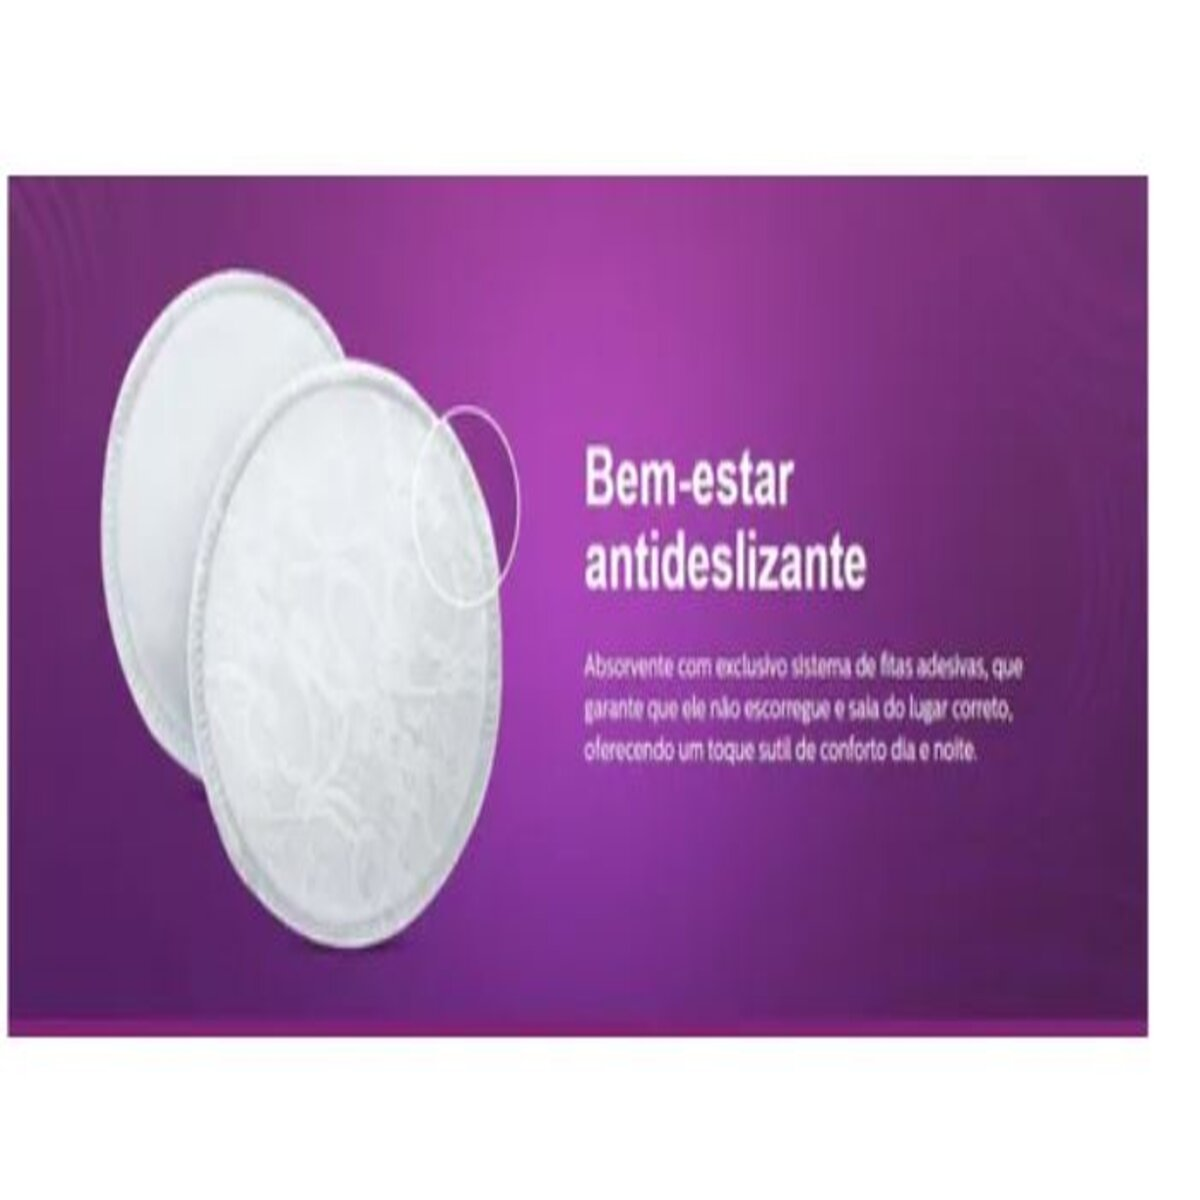 ABSORVENTE DESCARTAVEL PARA SEIOS 24PCS